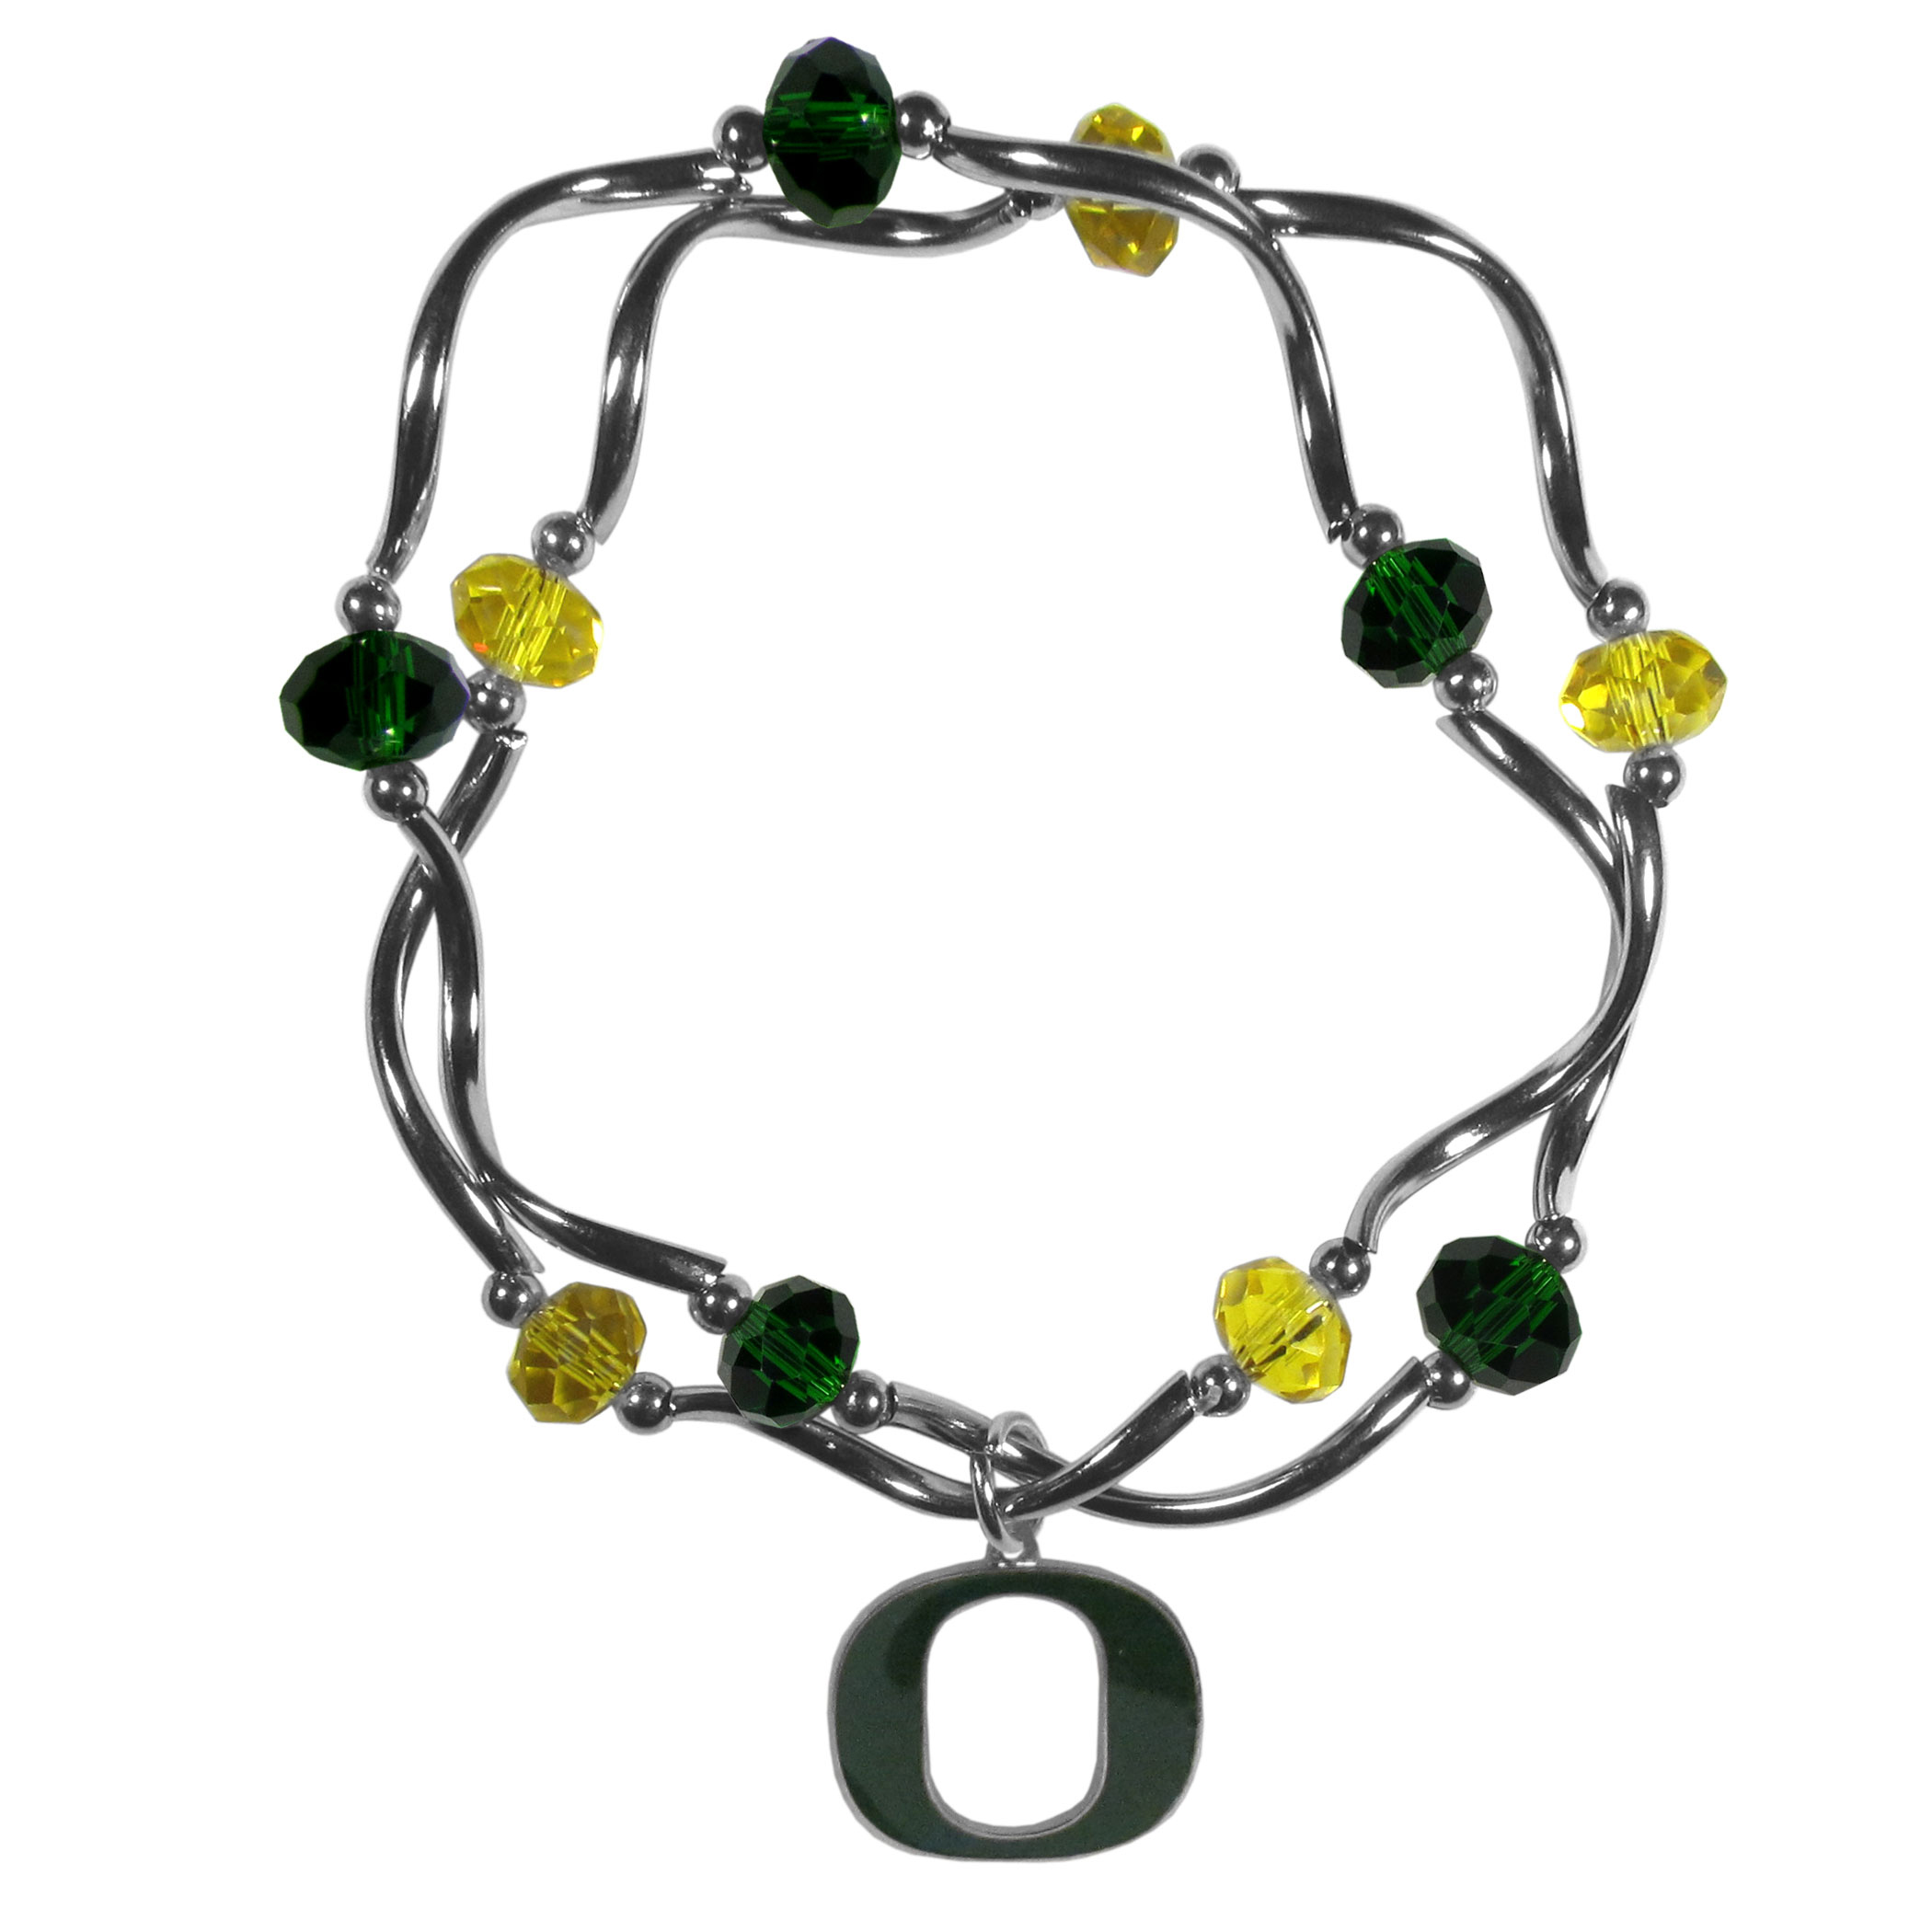 Oregon Ducks Crystal Bead Bracelet - This delicate bead bracelet has eye-catching team colored beads that are strung on 2 stretch cords that provide a comfortable and easy fit. The crystals are separated by beautiful helix beads in high polish chrome for a truly designer inspired look. The 2 strands of beads intertwine for a fun and stylish bracelet. This chic accessory is finished off with a Oregon Ducks team charm that has expertly carved detail and an enameled color finish. A contemporary look to thrill any female sports fan. Whether this a gift for yourself or someone special you cannot miss with this trend-setting fashion bracelet.